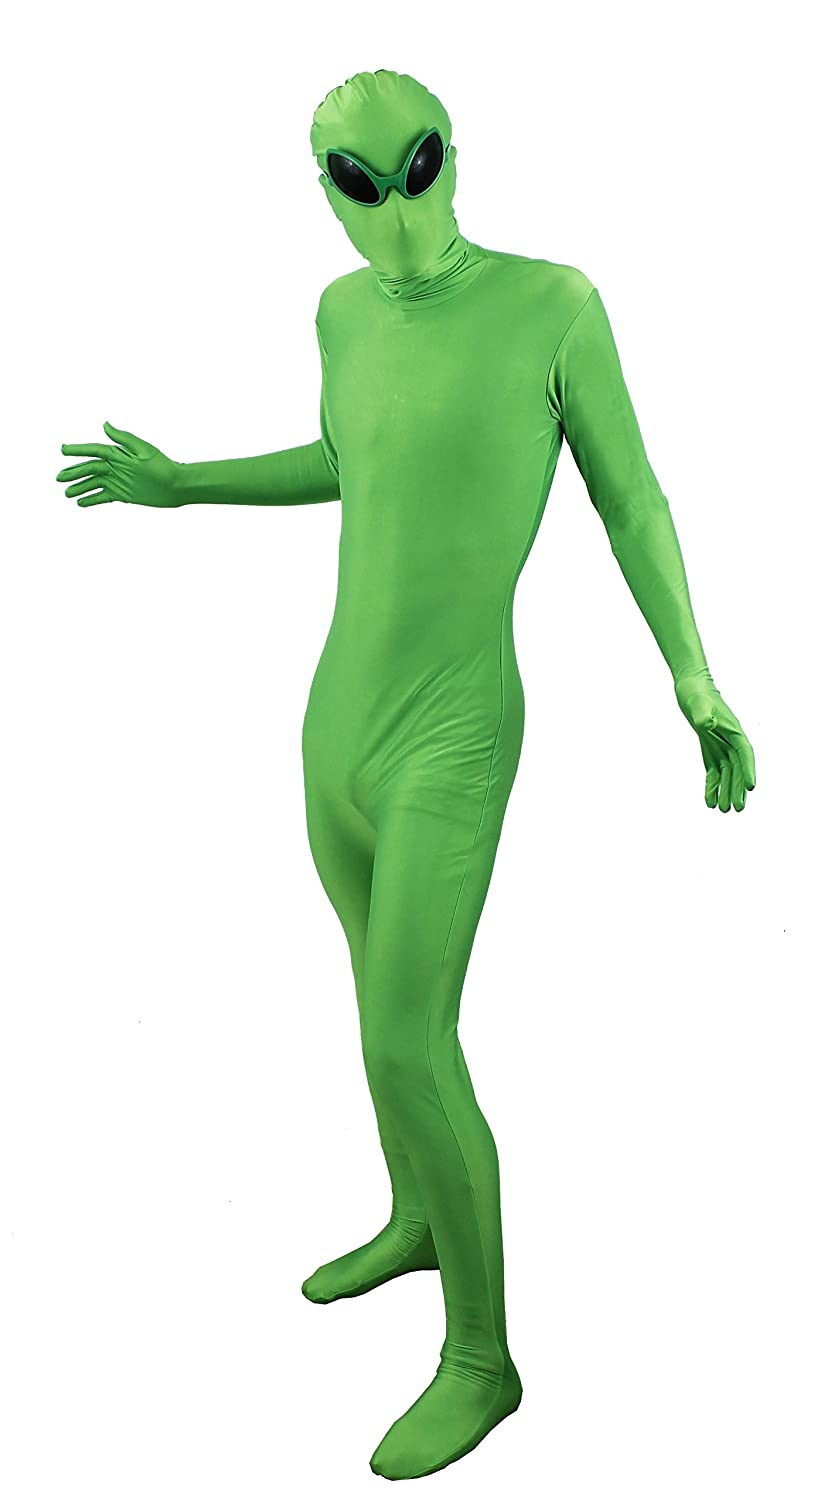 91710c5ee ILOVEFANCYDRESS® ALIEN FANCY DRESS SKIN SUIT COSTUME HALLOWEEN MARTIAN  SPACE TRAVELLER UFO MAN GREEN SKINSUIT + ALIEN GLASSES SMALL